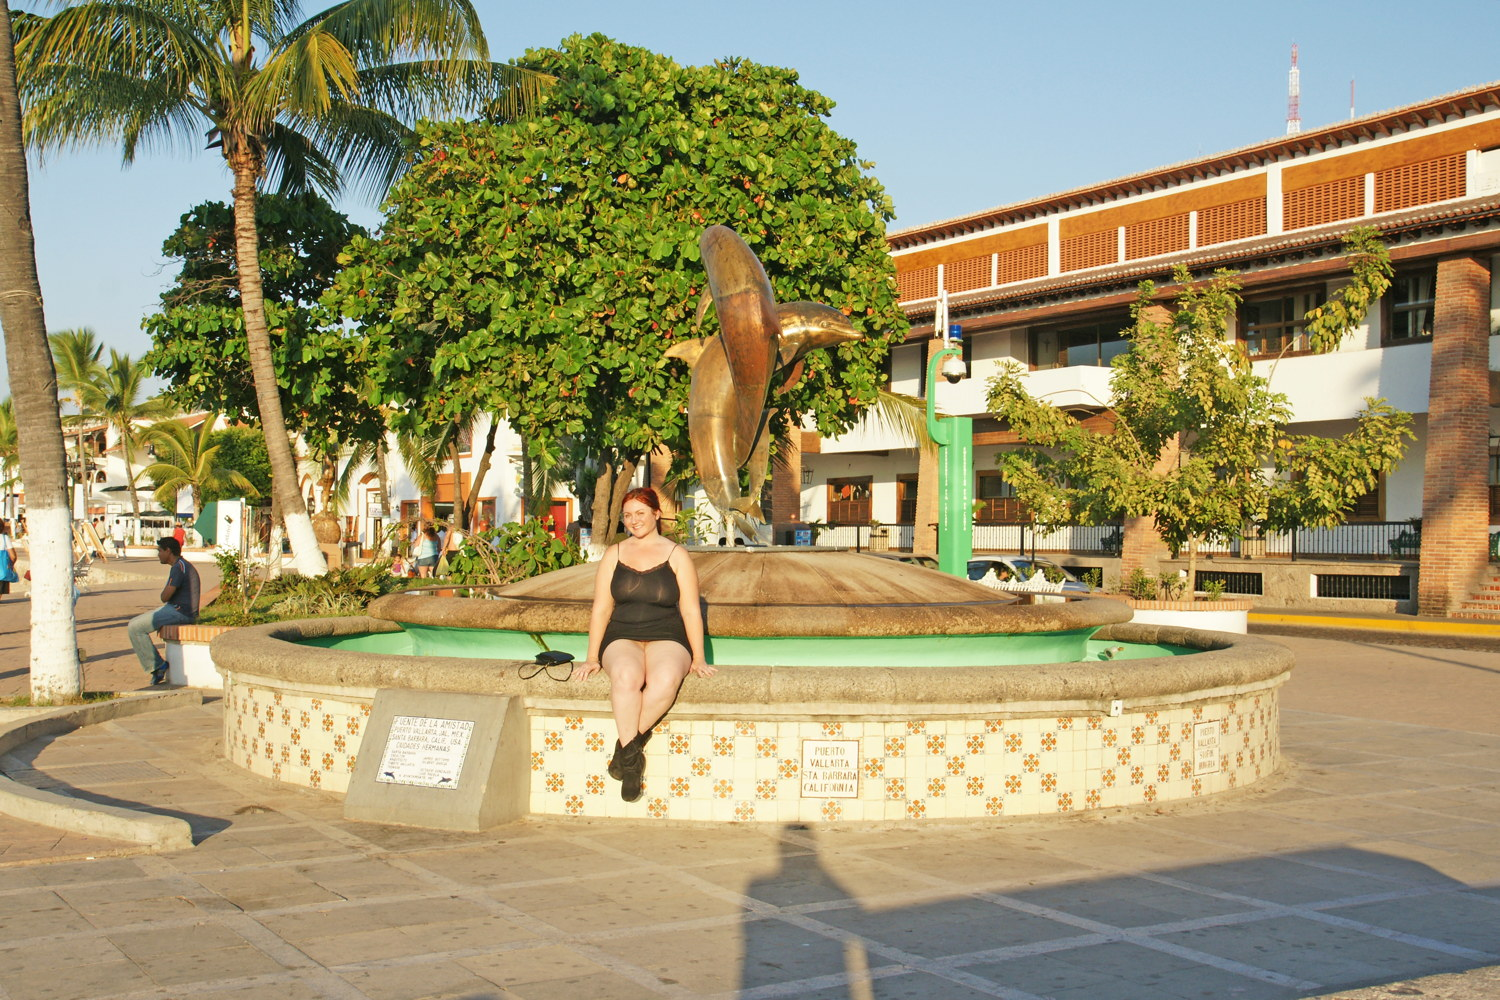 The Friendship Fountain, aka the Dancing Dolphins Fountain.